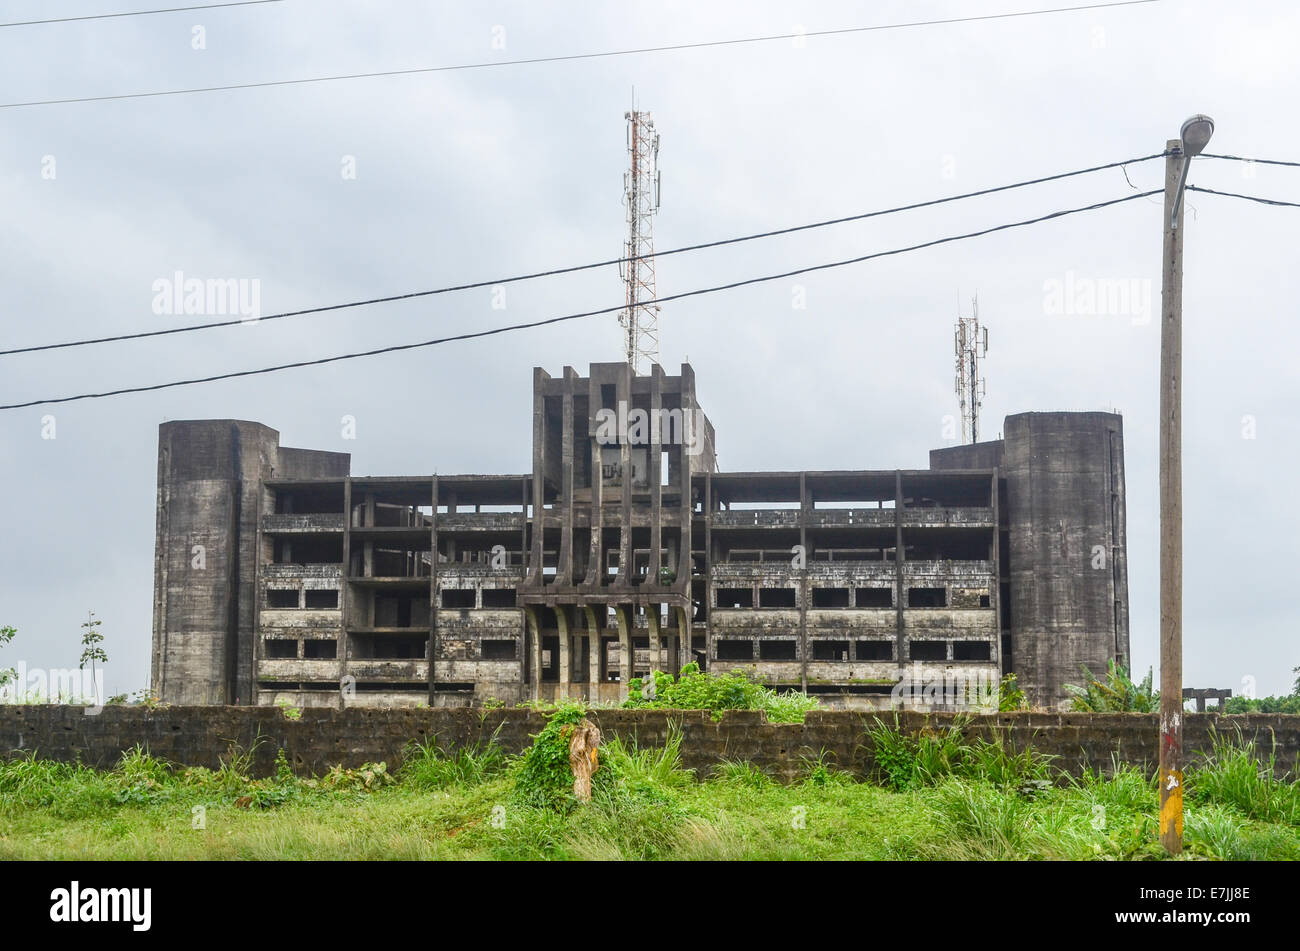 Ruins of the former ministry of Justice in Monrovia, Liberia - Stock Image